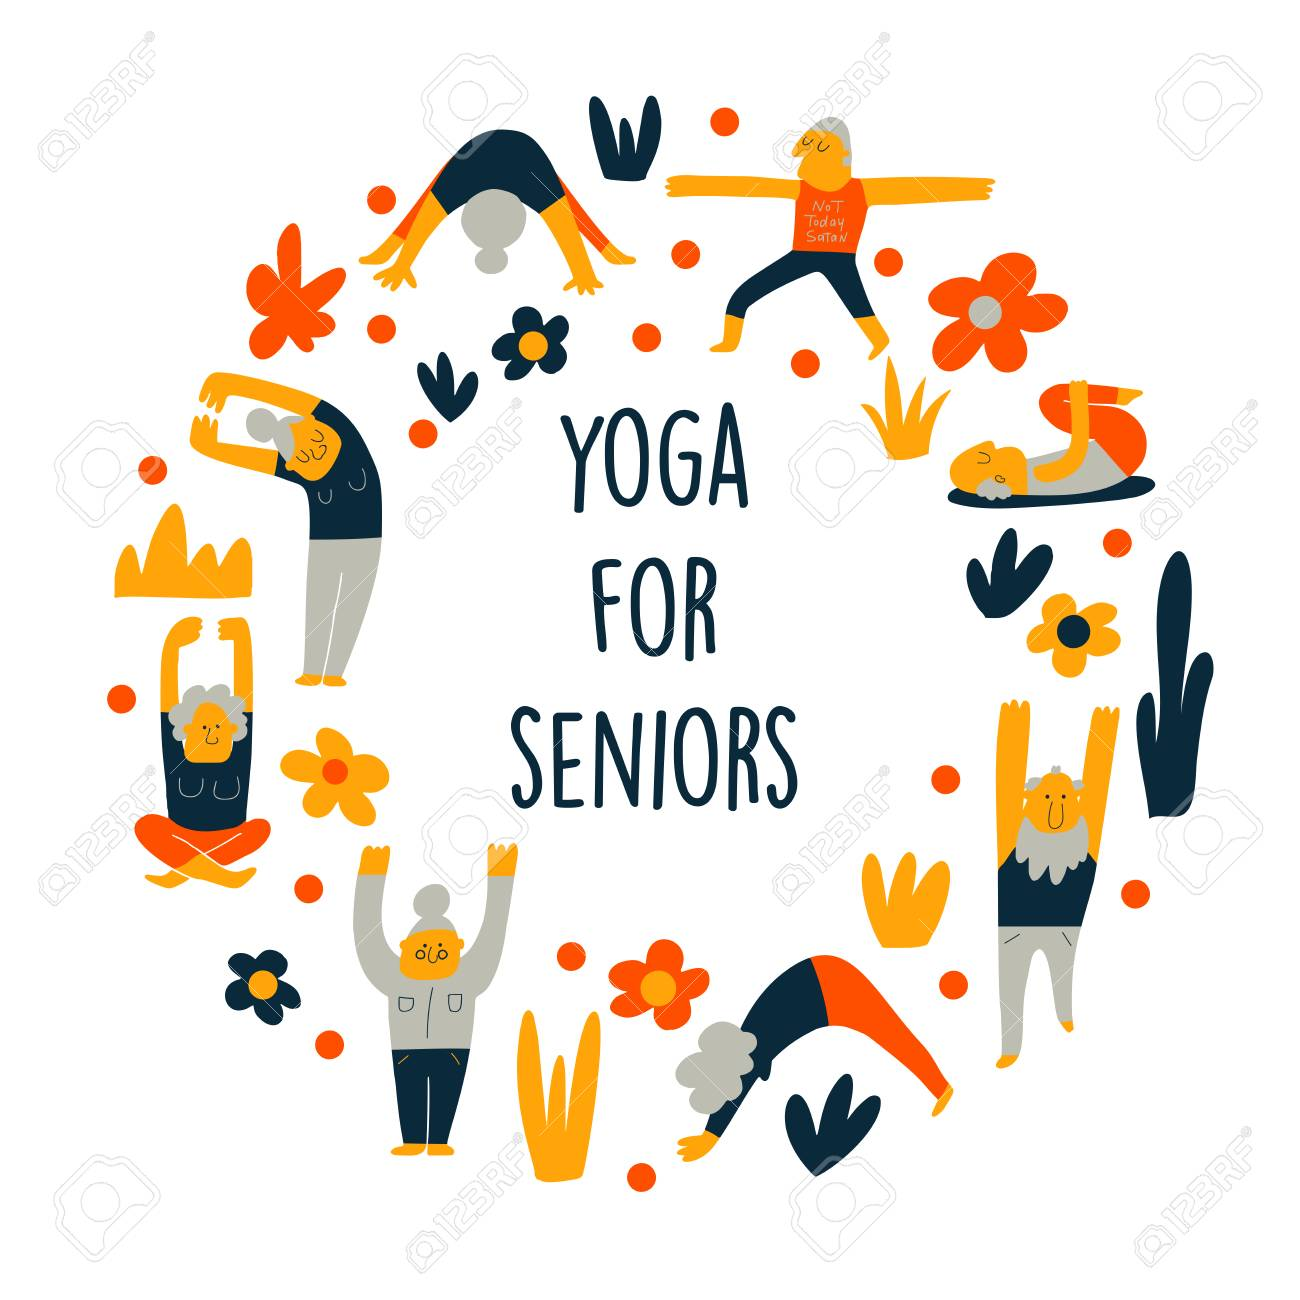 Funny Cartoon Illustration Of Senior People Doing Yoga Exercises Royalty Free Cliparts Vectors And Stock Illustration Image 122884406